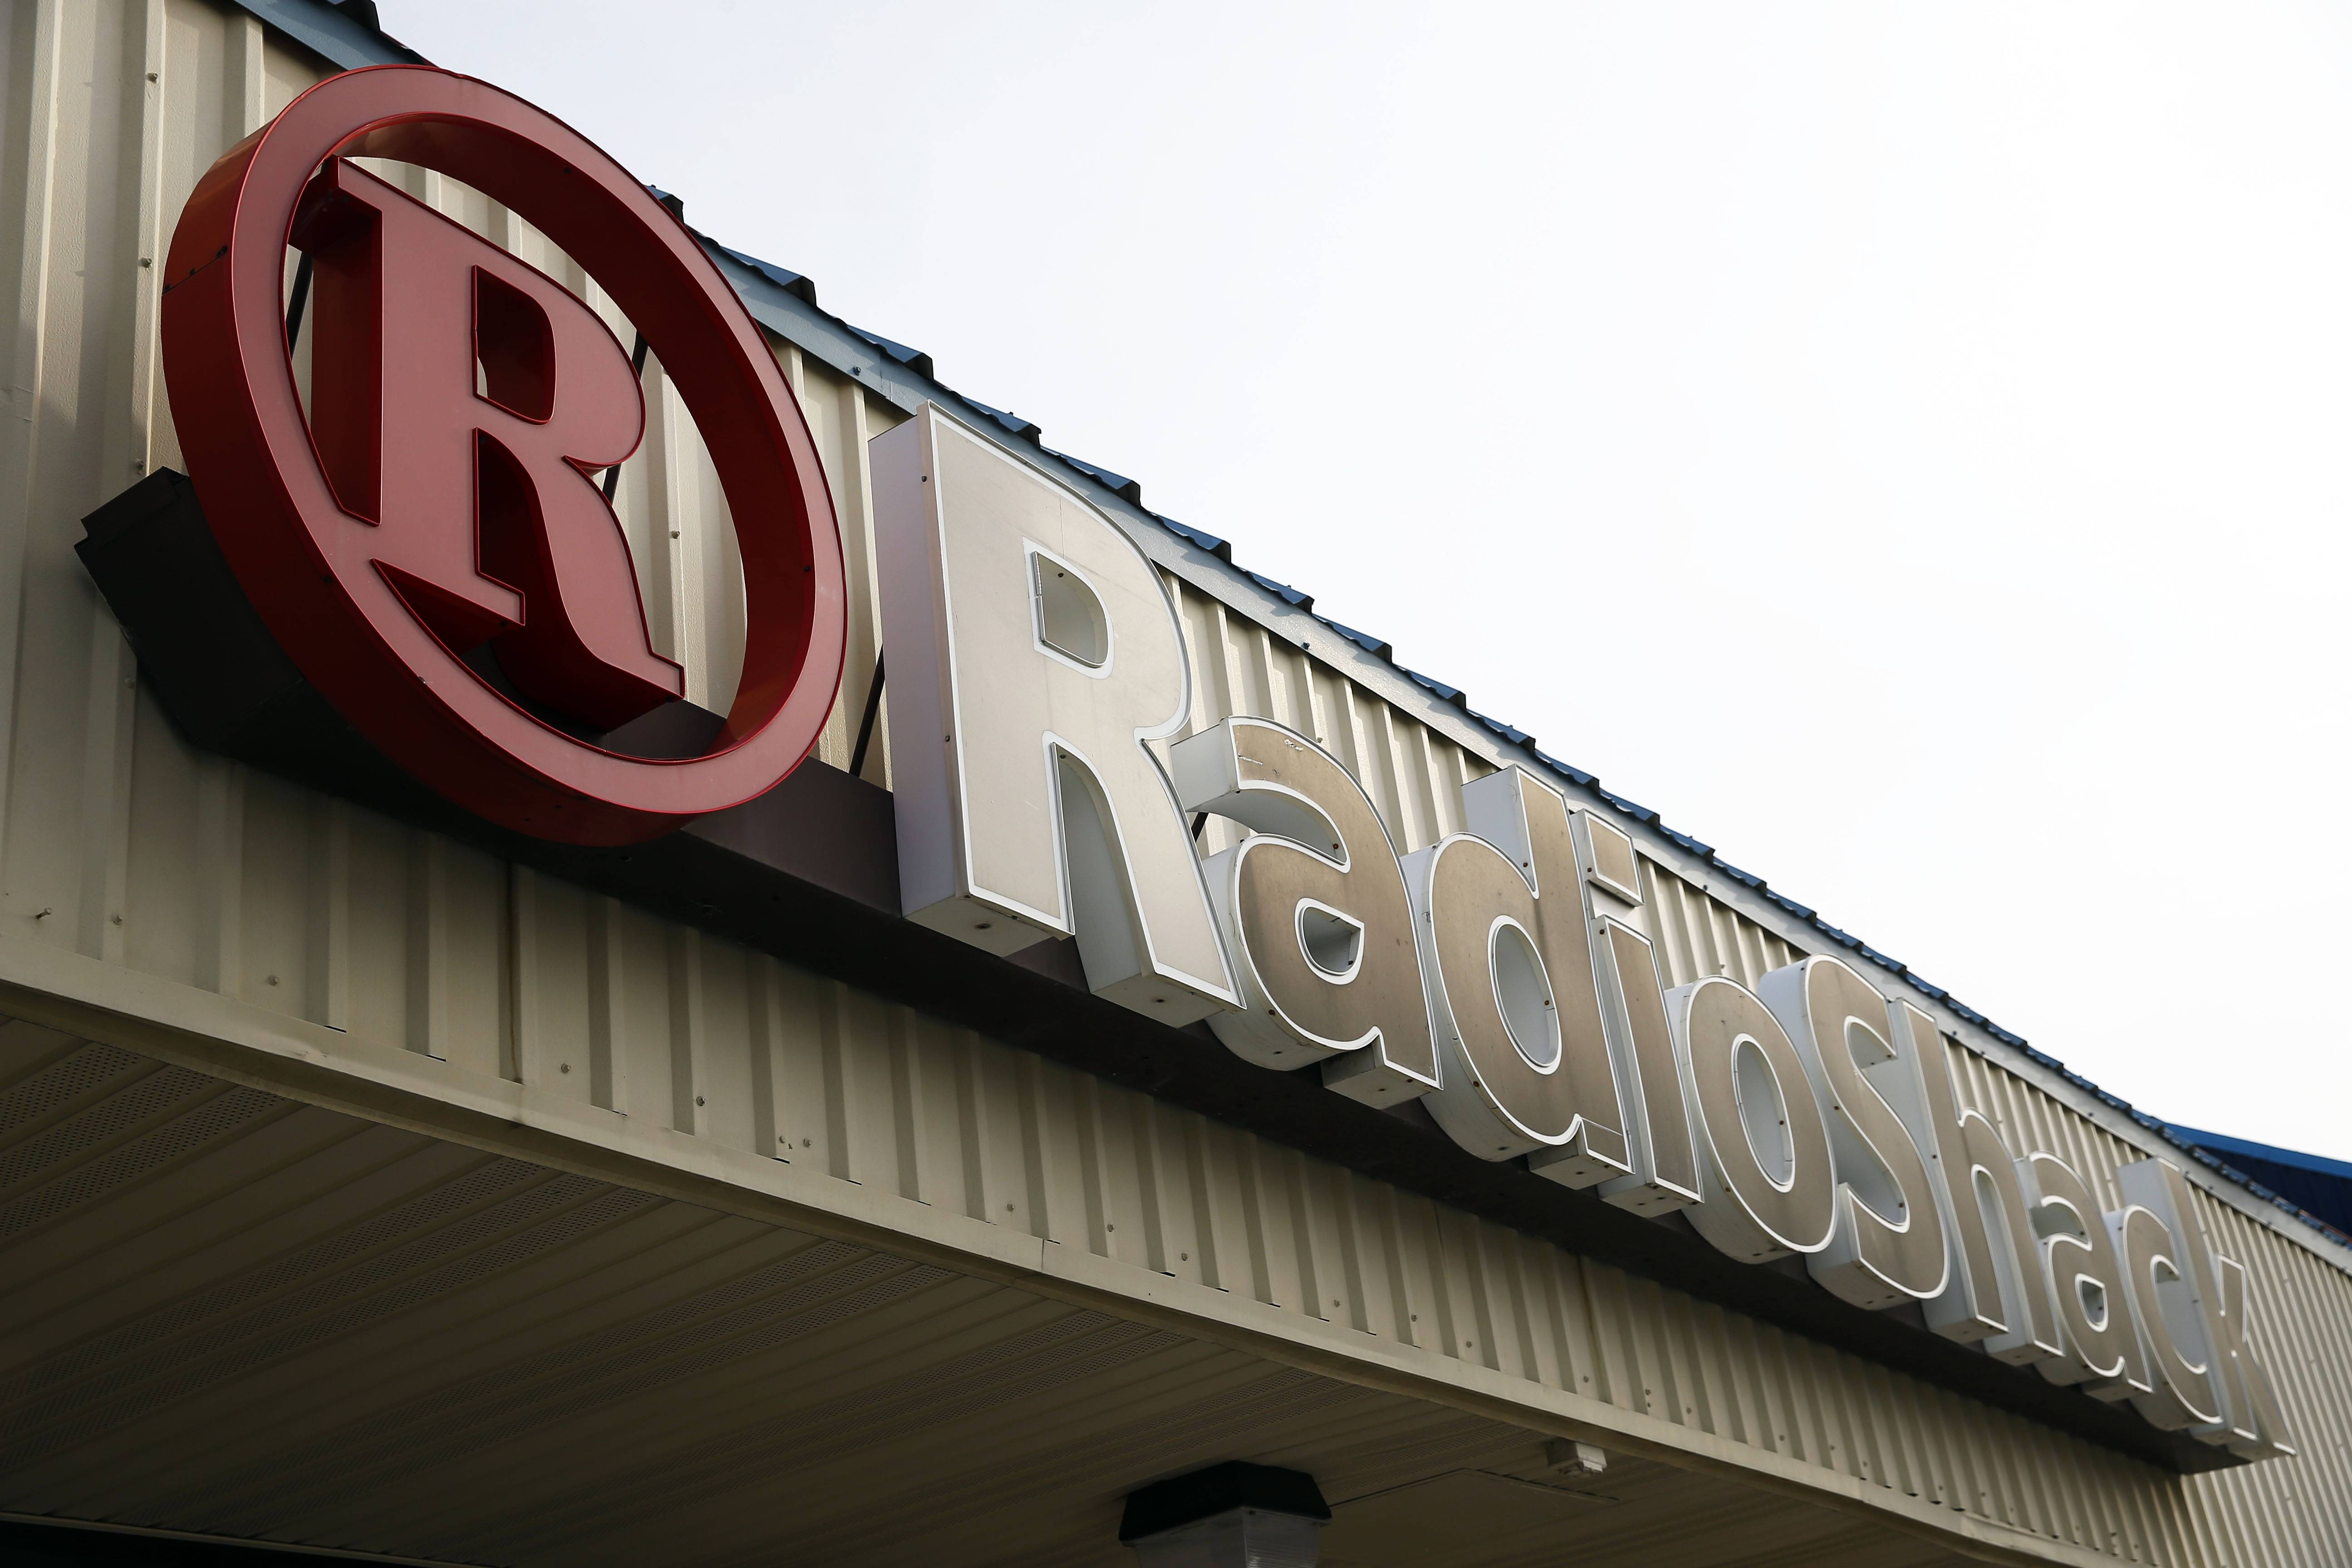 Long known as a destination for batteries and obscure electronic parts, RadioShack has sought to remake itself as a specialist in wireless devices and accessories. But growth in the wireless business is slowing, as more people have smartphones and see fewer reasons to upgrade.